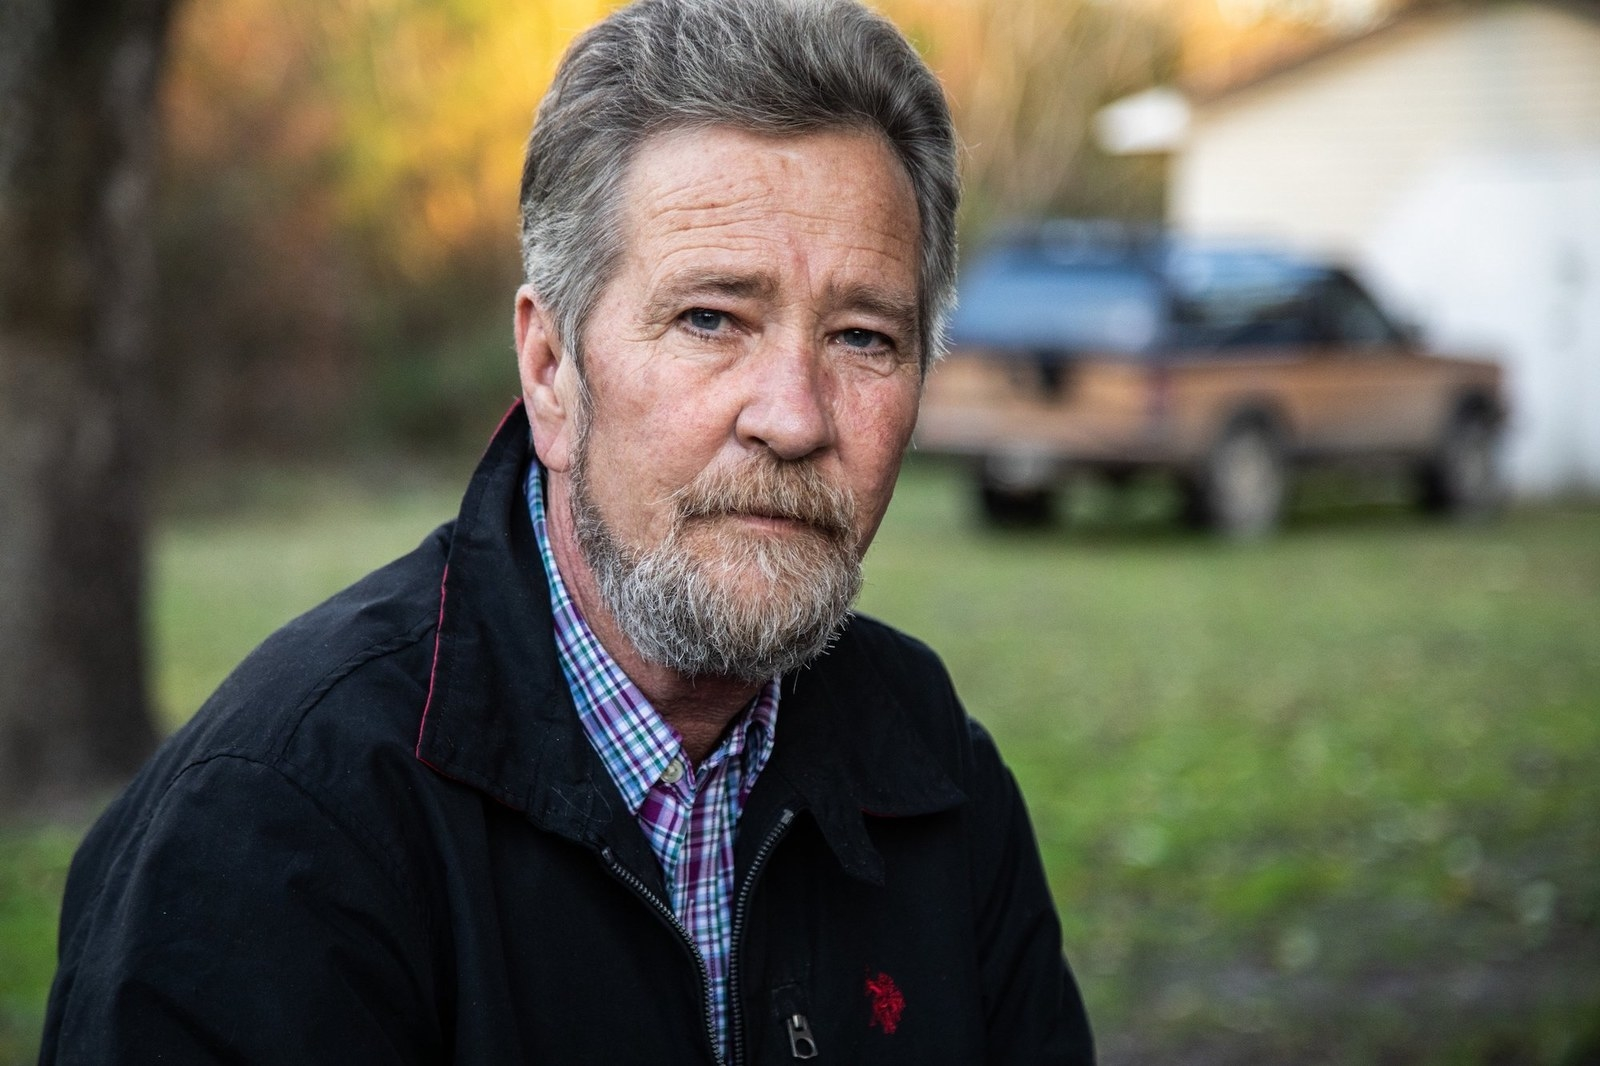 Leslie McCrae Dowless on Wednesday, Dec. 5, 2018.